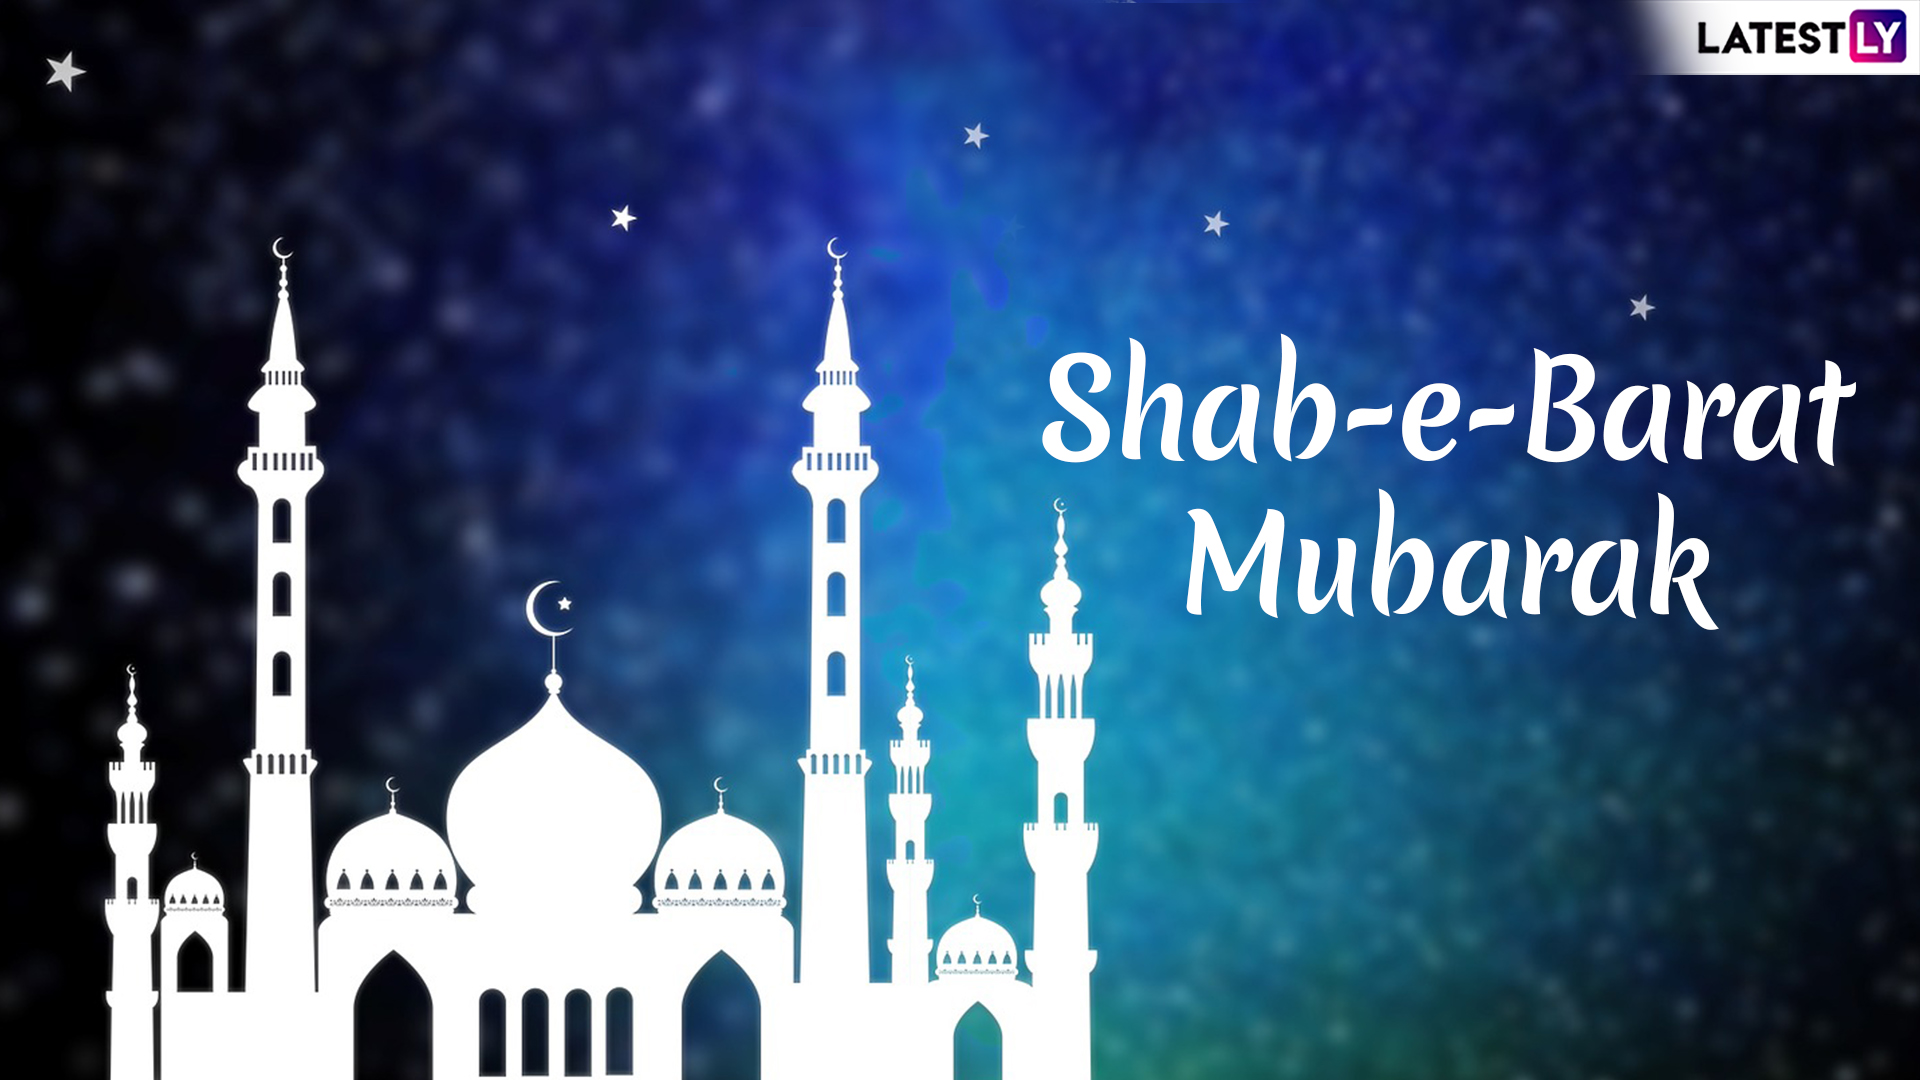 Happy Shab-e-Barat